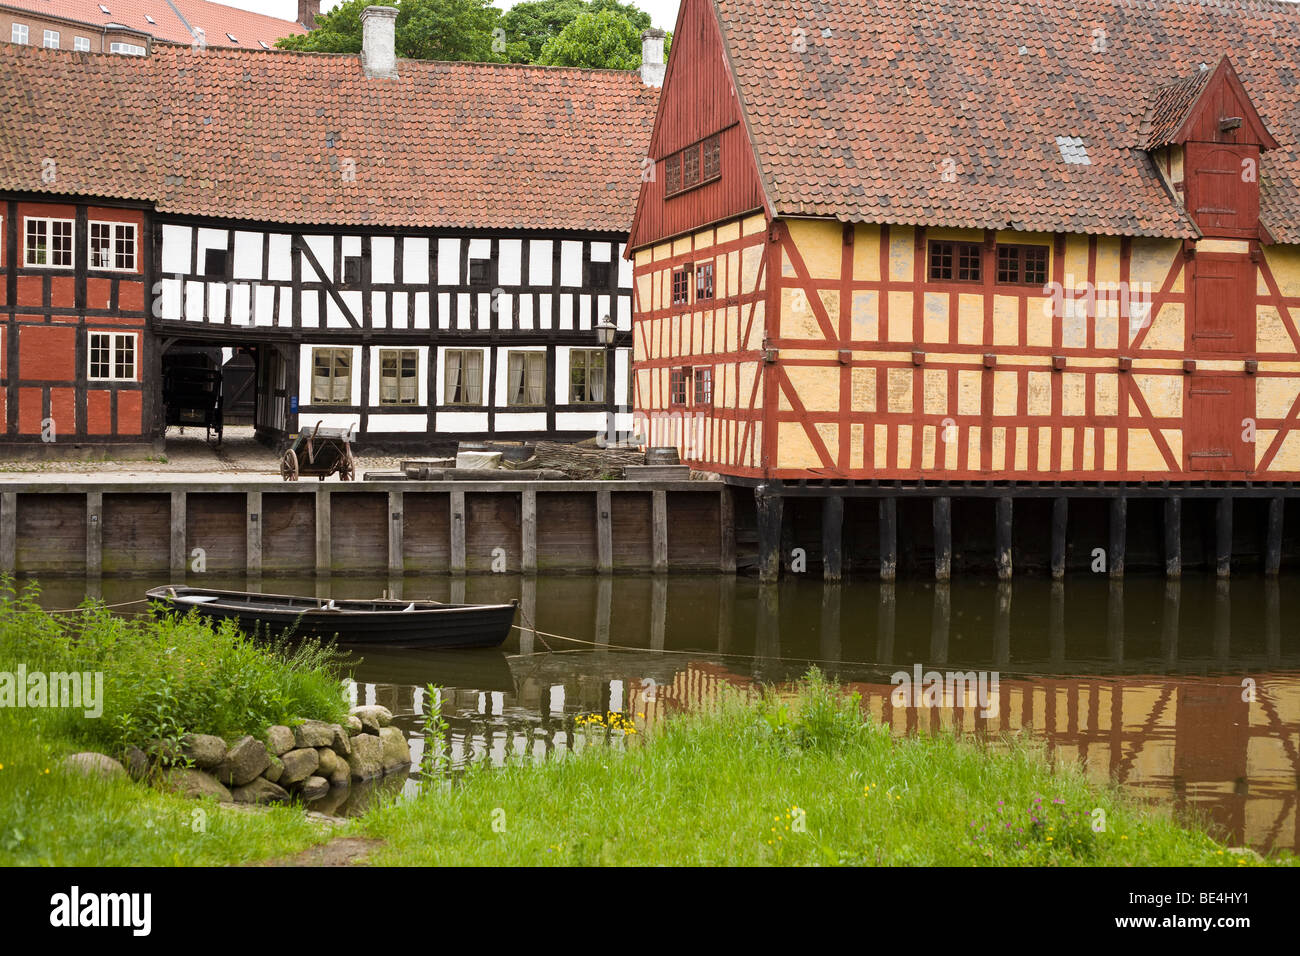 Half Timbered houses of old Aarhus. A small row boat floats quietly in the water in front of rows of traditional Stock Photo